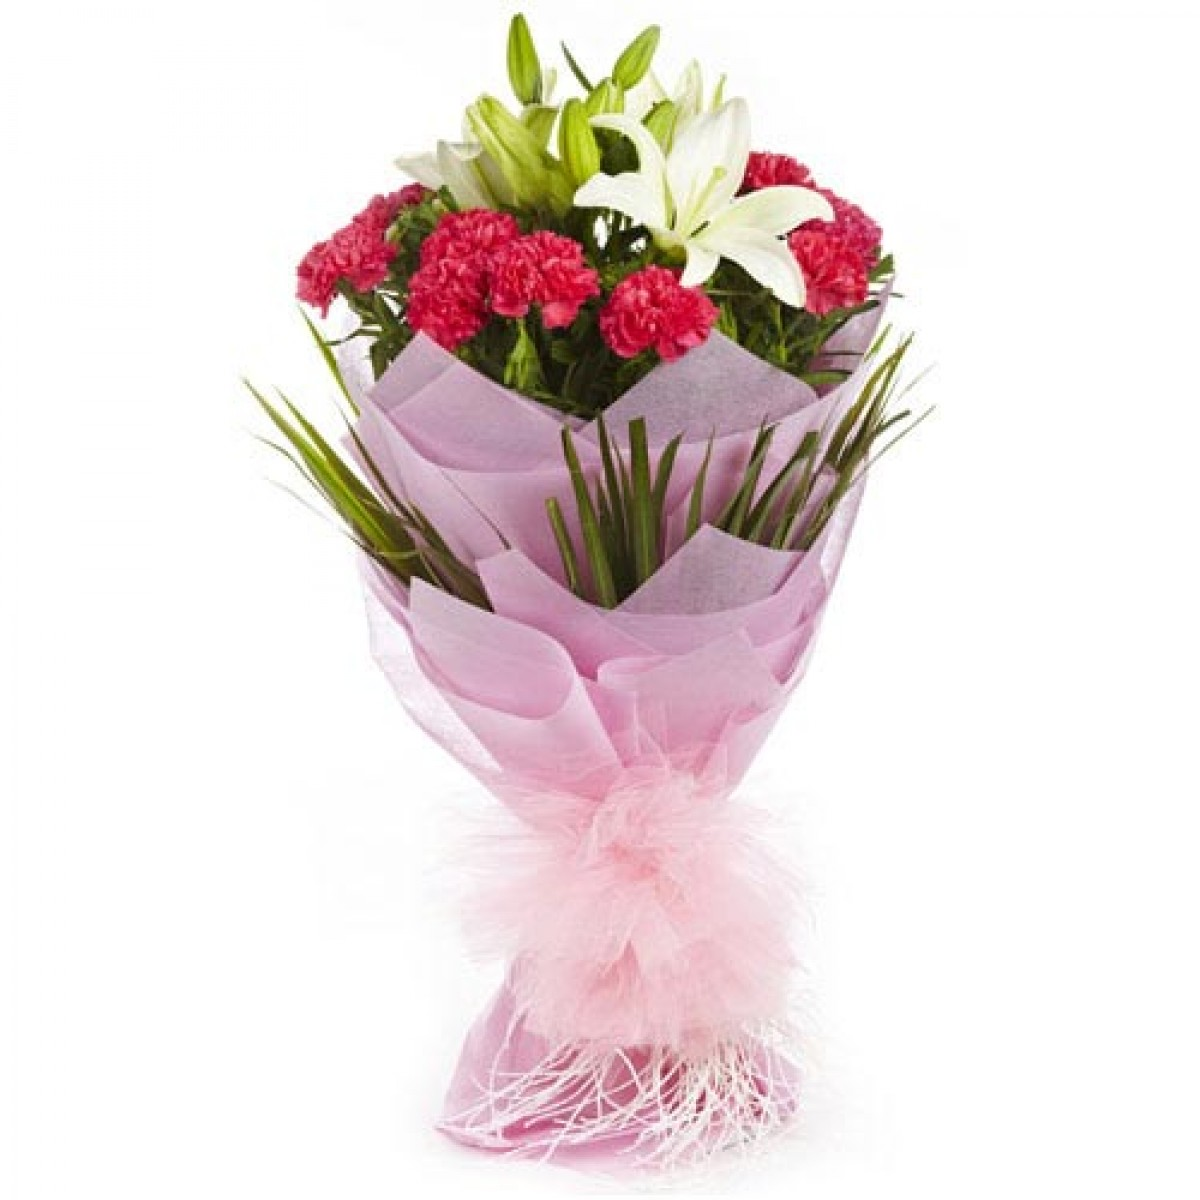 Carnation Flower Gift Lily And Carnation Bouquet | Buy Gifts Online